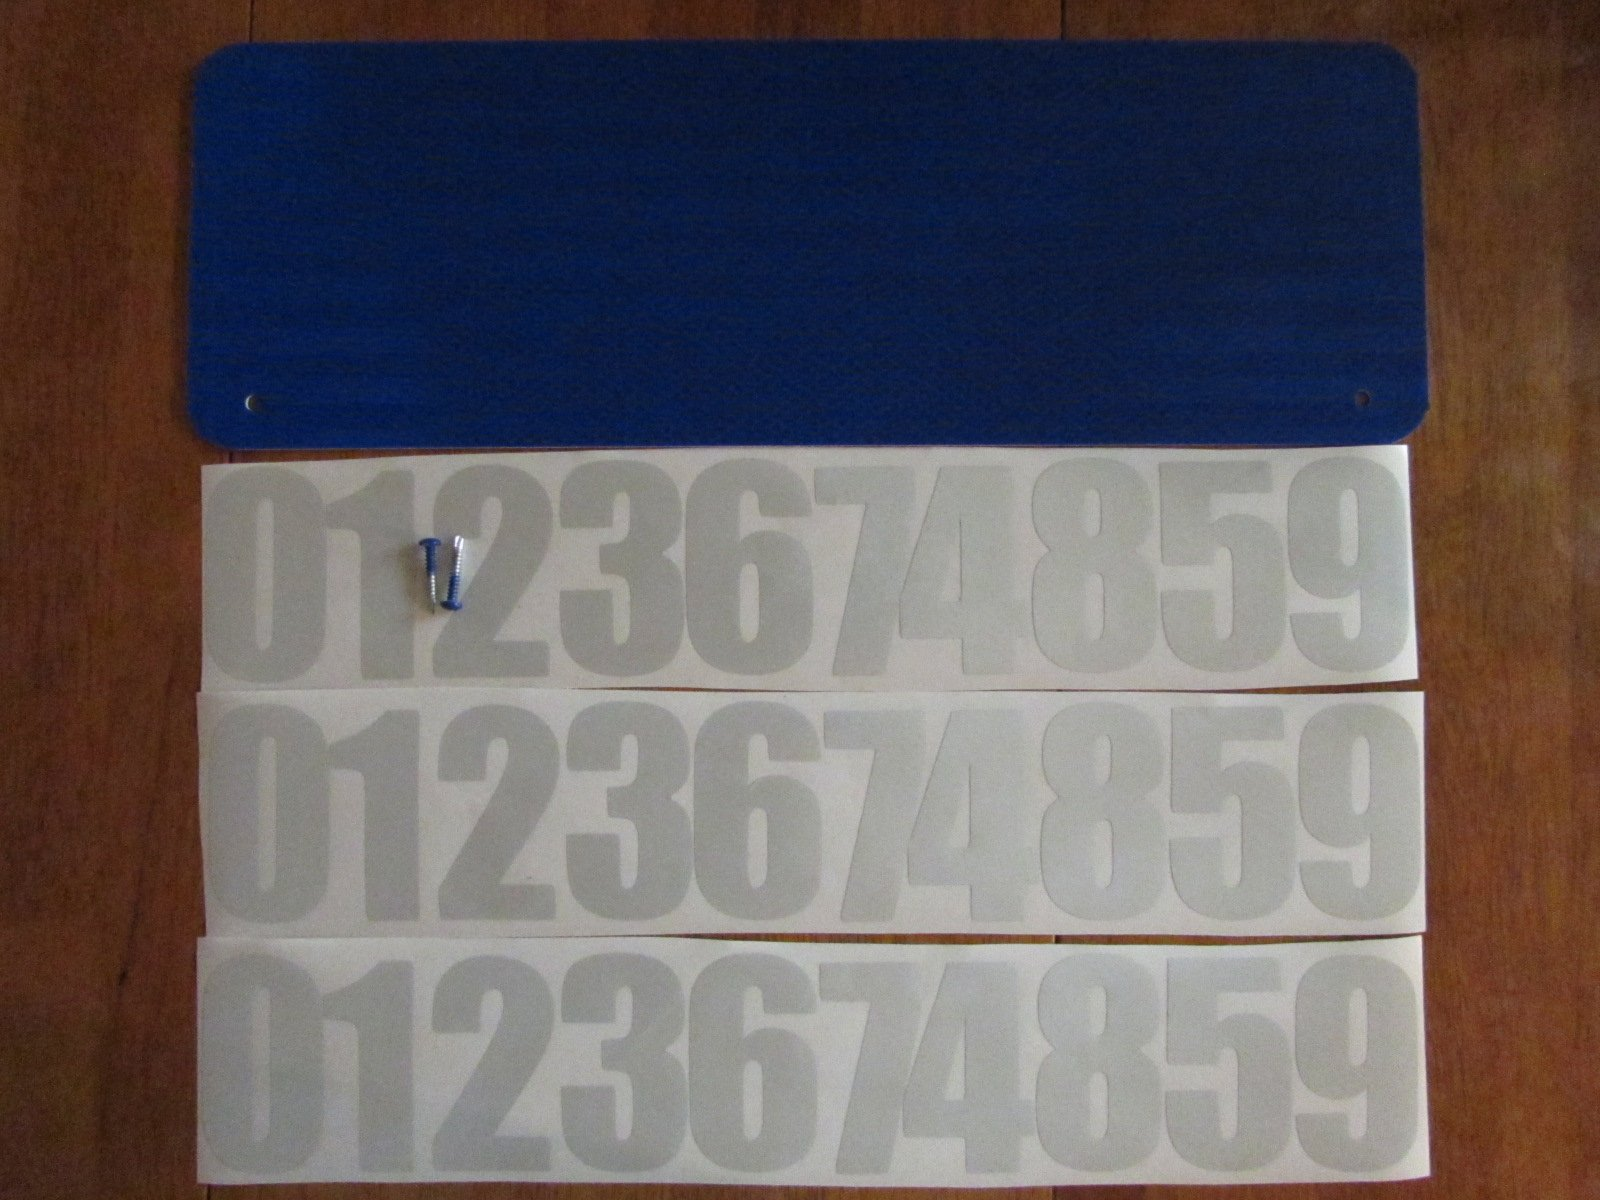 DIY Premium 911 Blue 3M Prismatic Reflective Address Sign Kit. W/ 3 Inch Numbers and Reflective Plate for Home or Business By Mg2 Signs